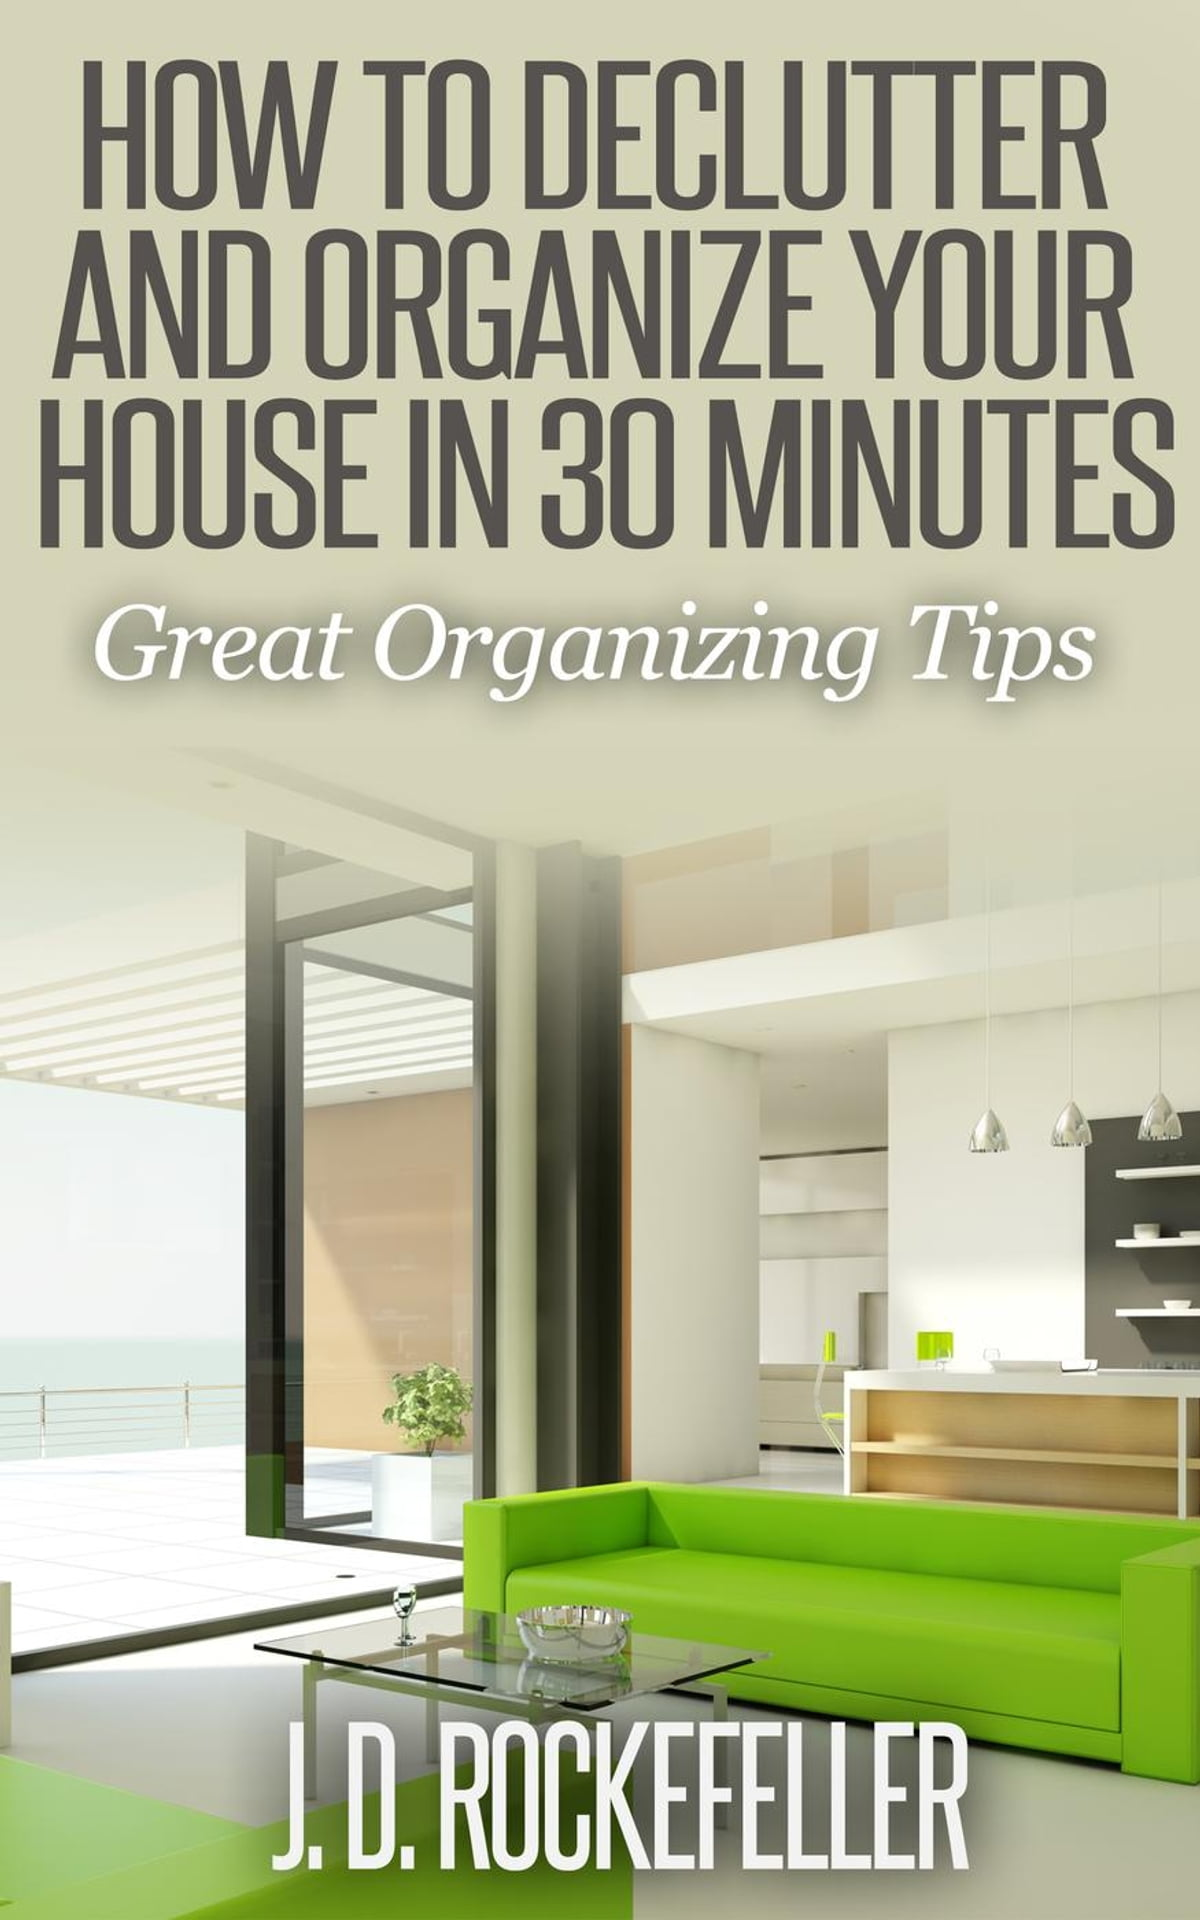 How to Declutter and Organize your House in 30 Minutes: Great Organizing  Tips eBook by J.D. Rockefeller - 9781386276500 | Rakuten Kobo